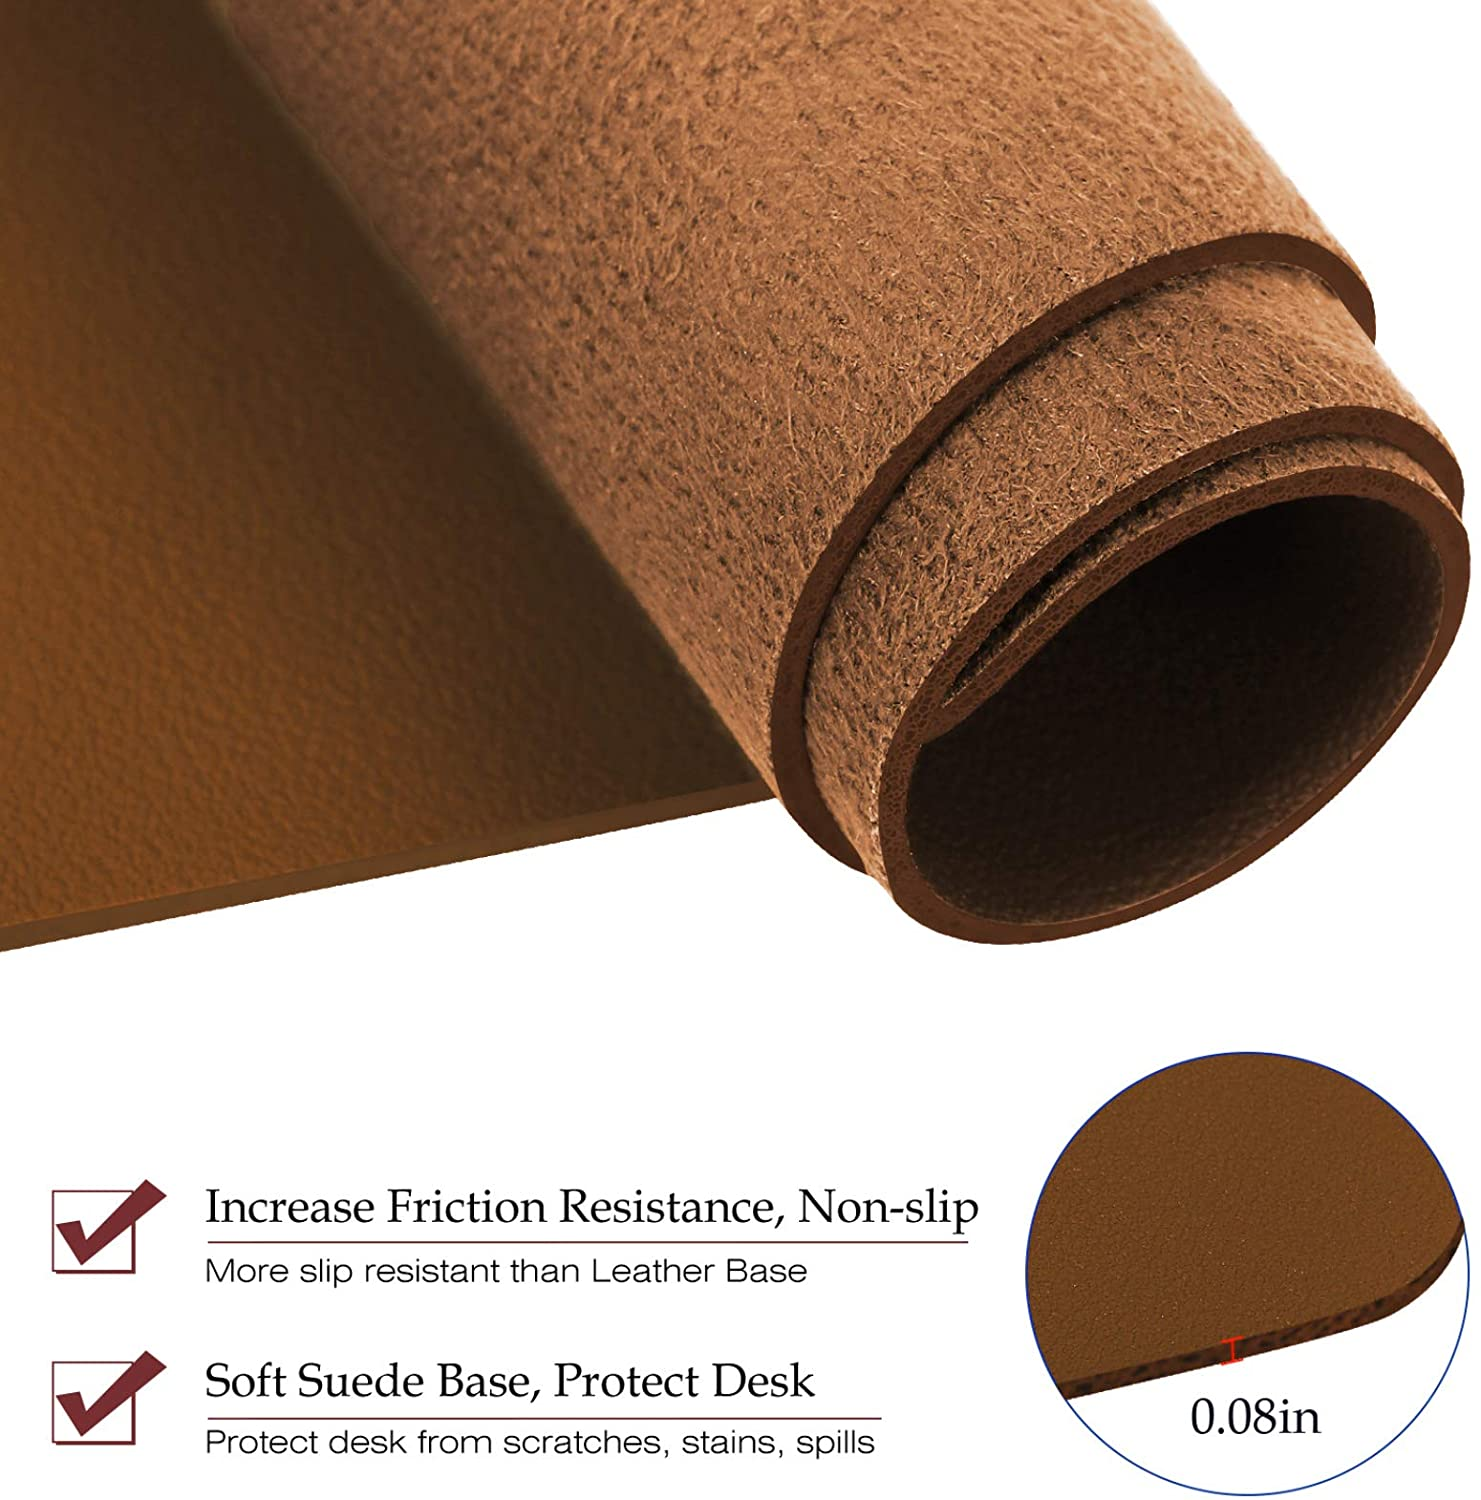 "TOWWI PU Leather Desk Pad with Suede Base, Multi-Color Non-Slip Mouse Pad, 32"" x 16"" Waterproof Desk Writing Mat, Large Desk Blotter Protector (Brown)"